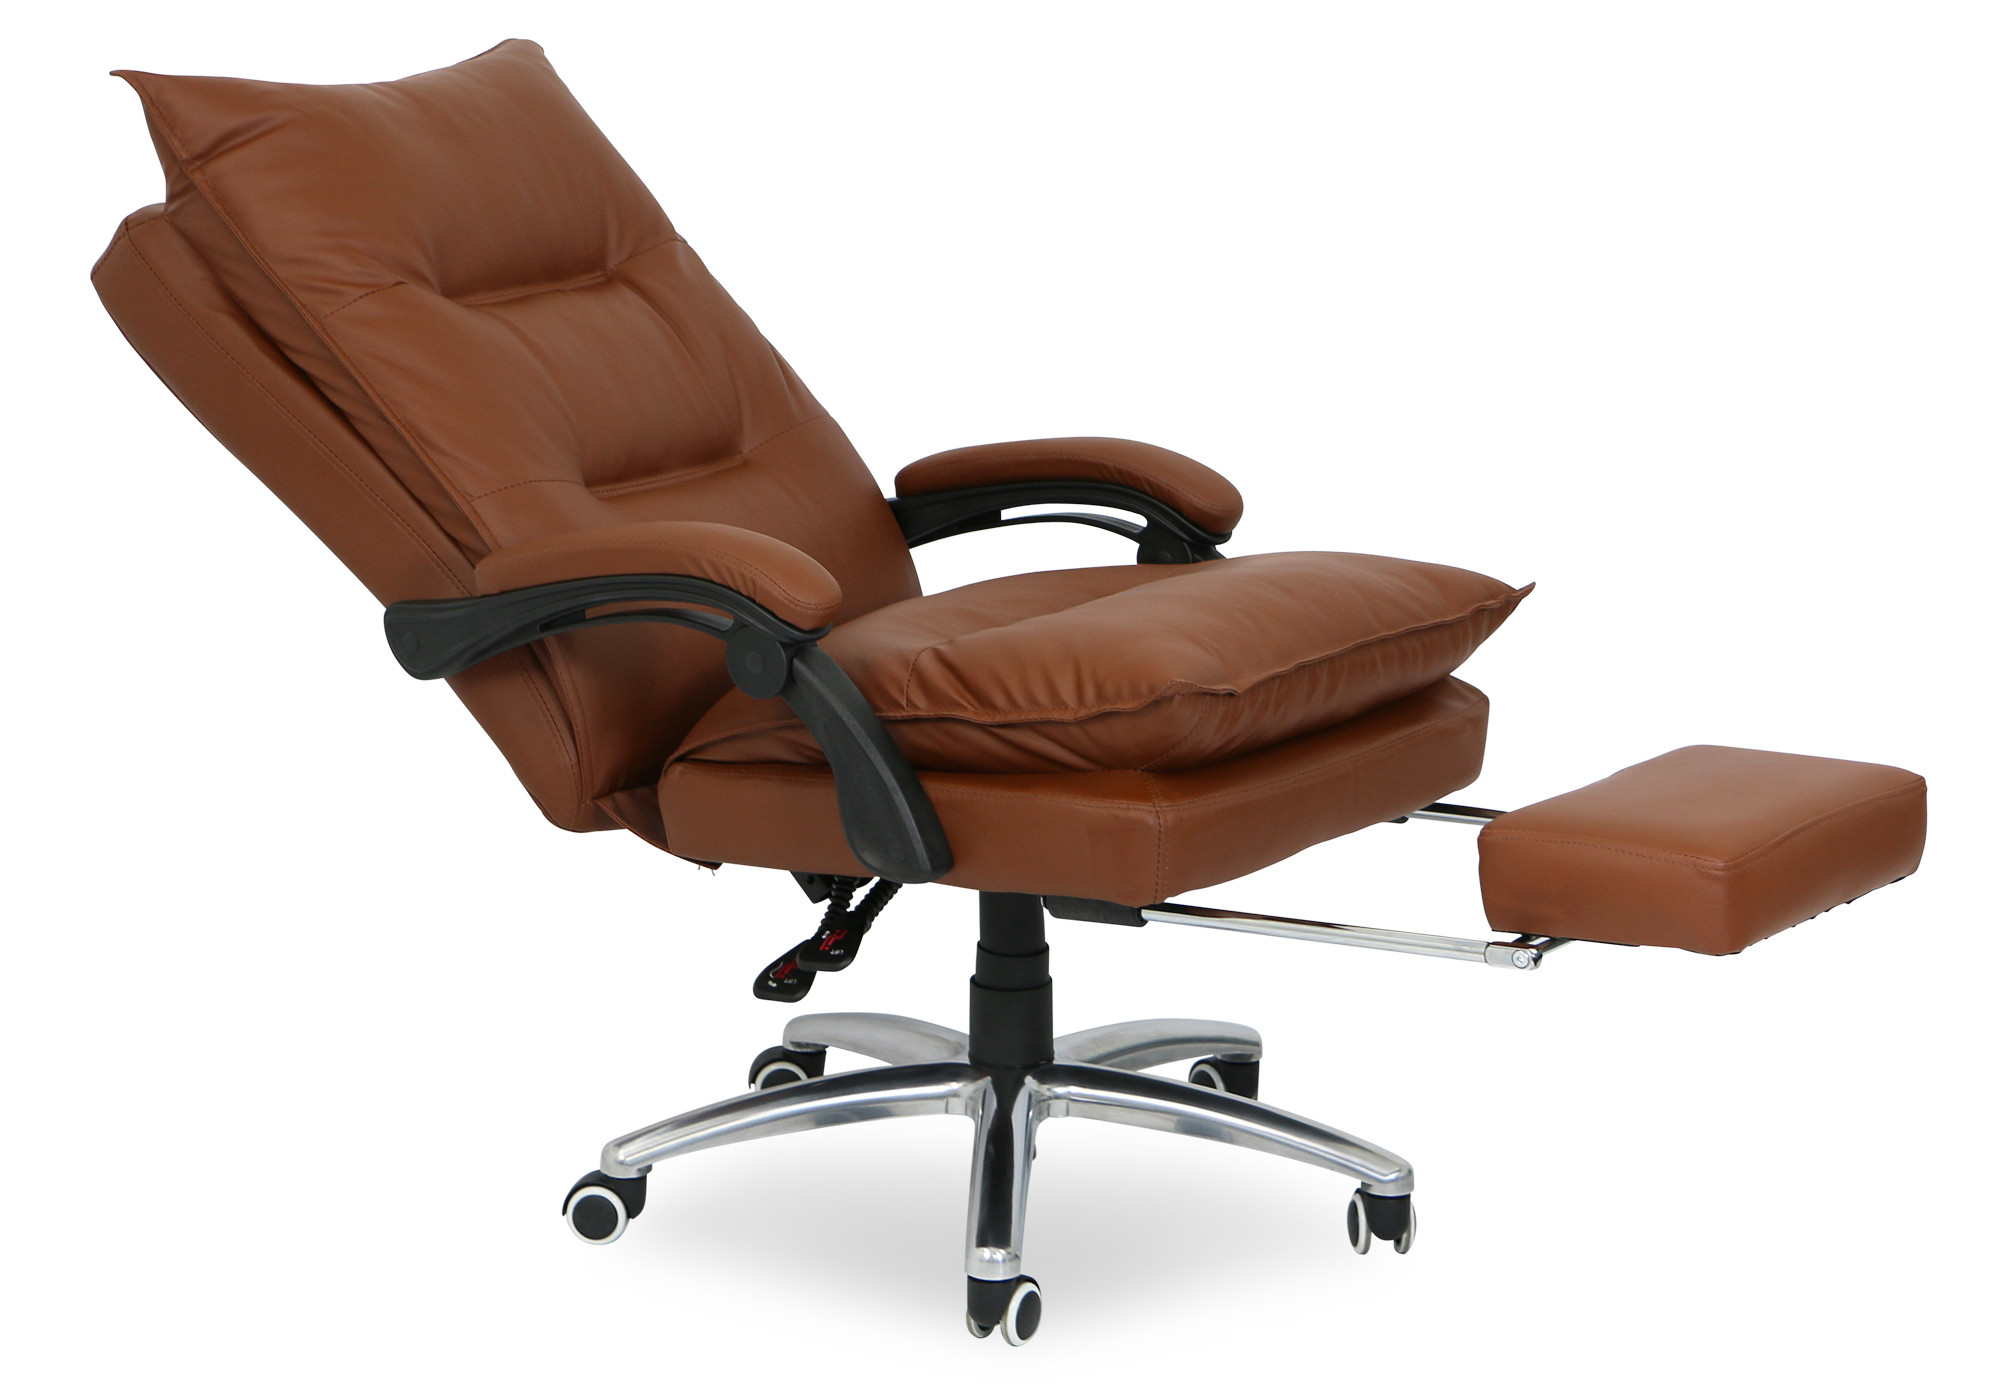 Deluxe Pu Executive Office Chair Brown Display Gallery Item 1